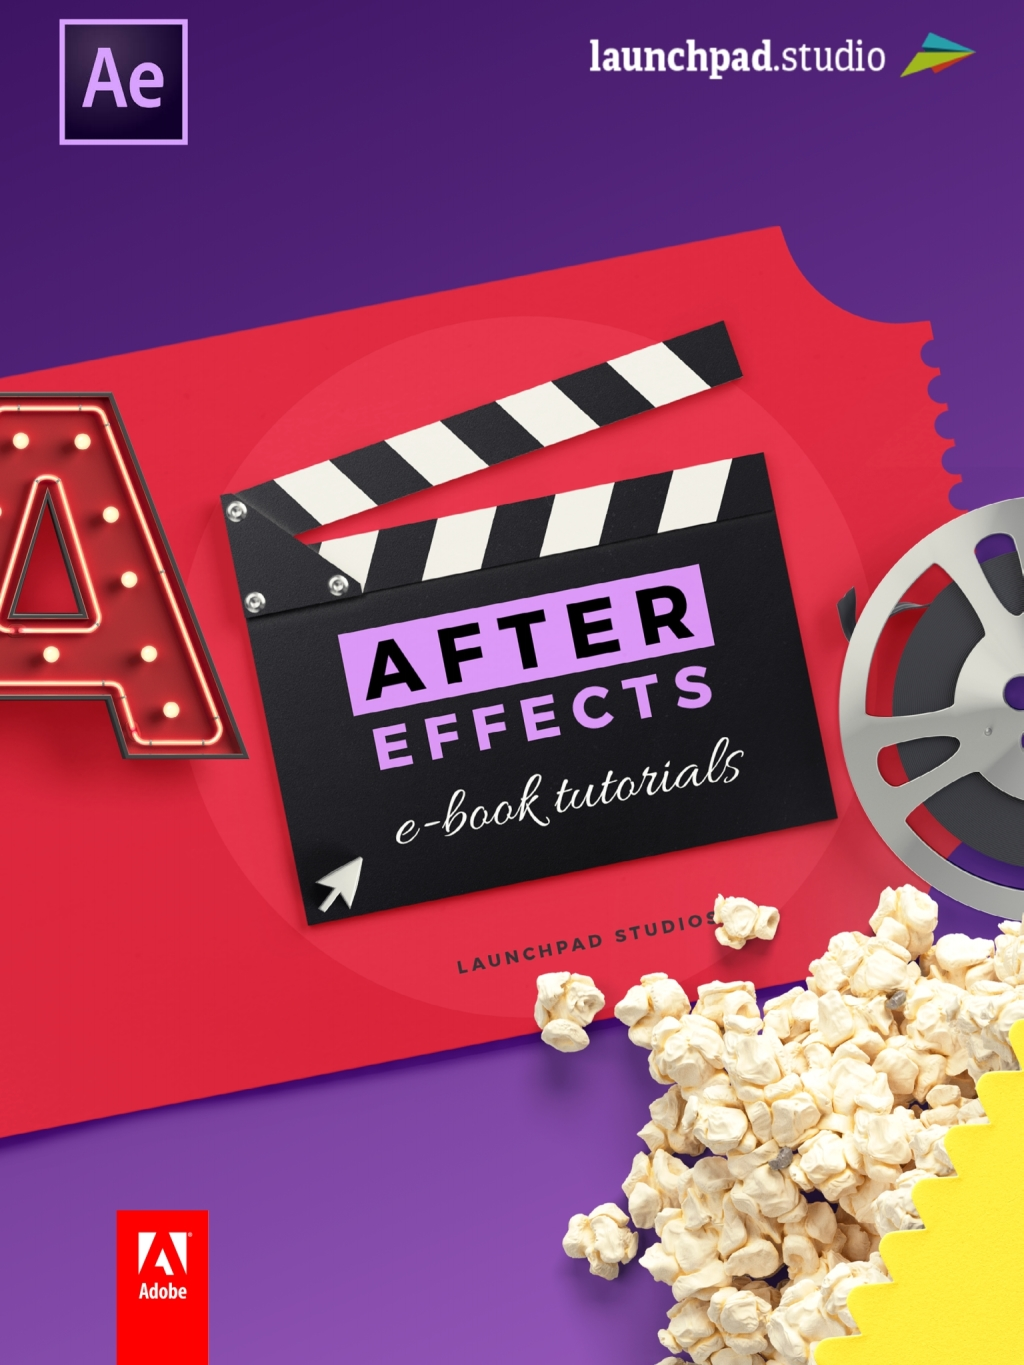 After Effects Essential Skills E-book Tutorials Guide (ebook)